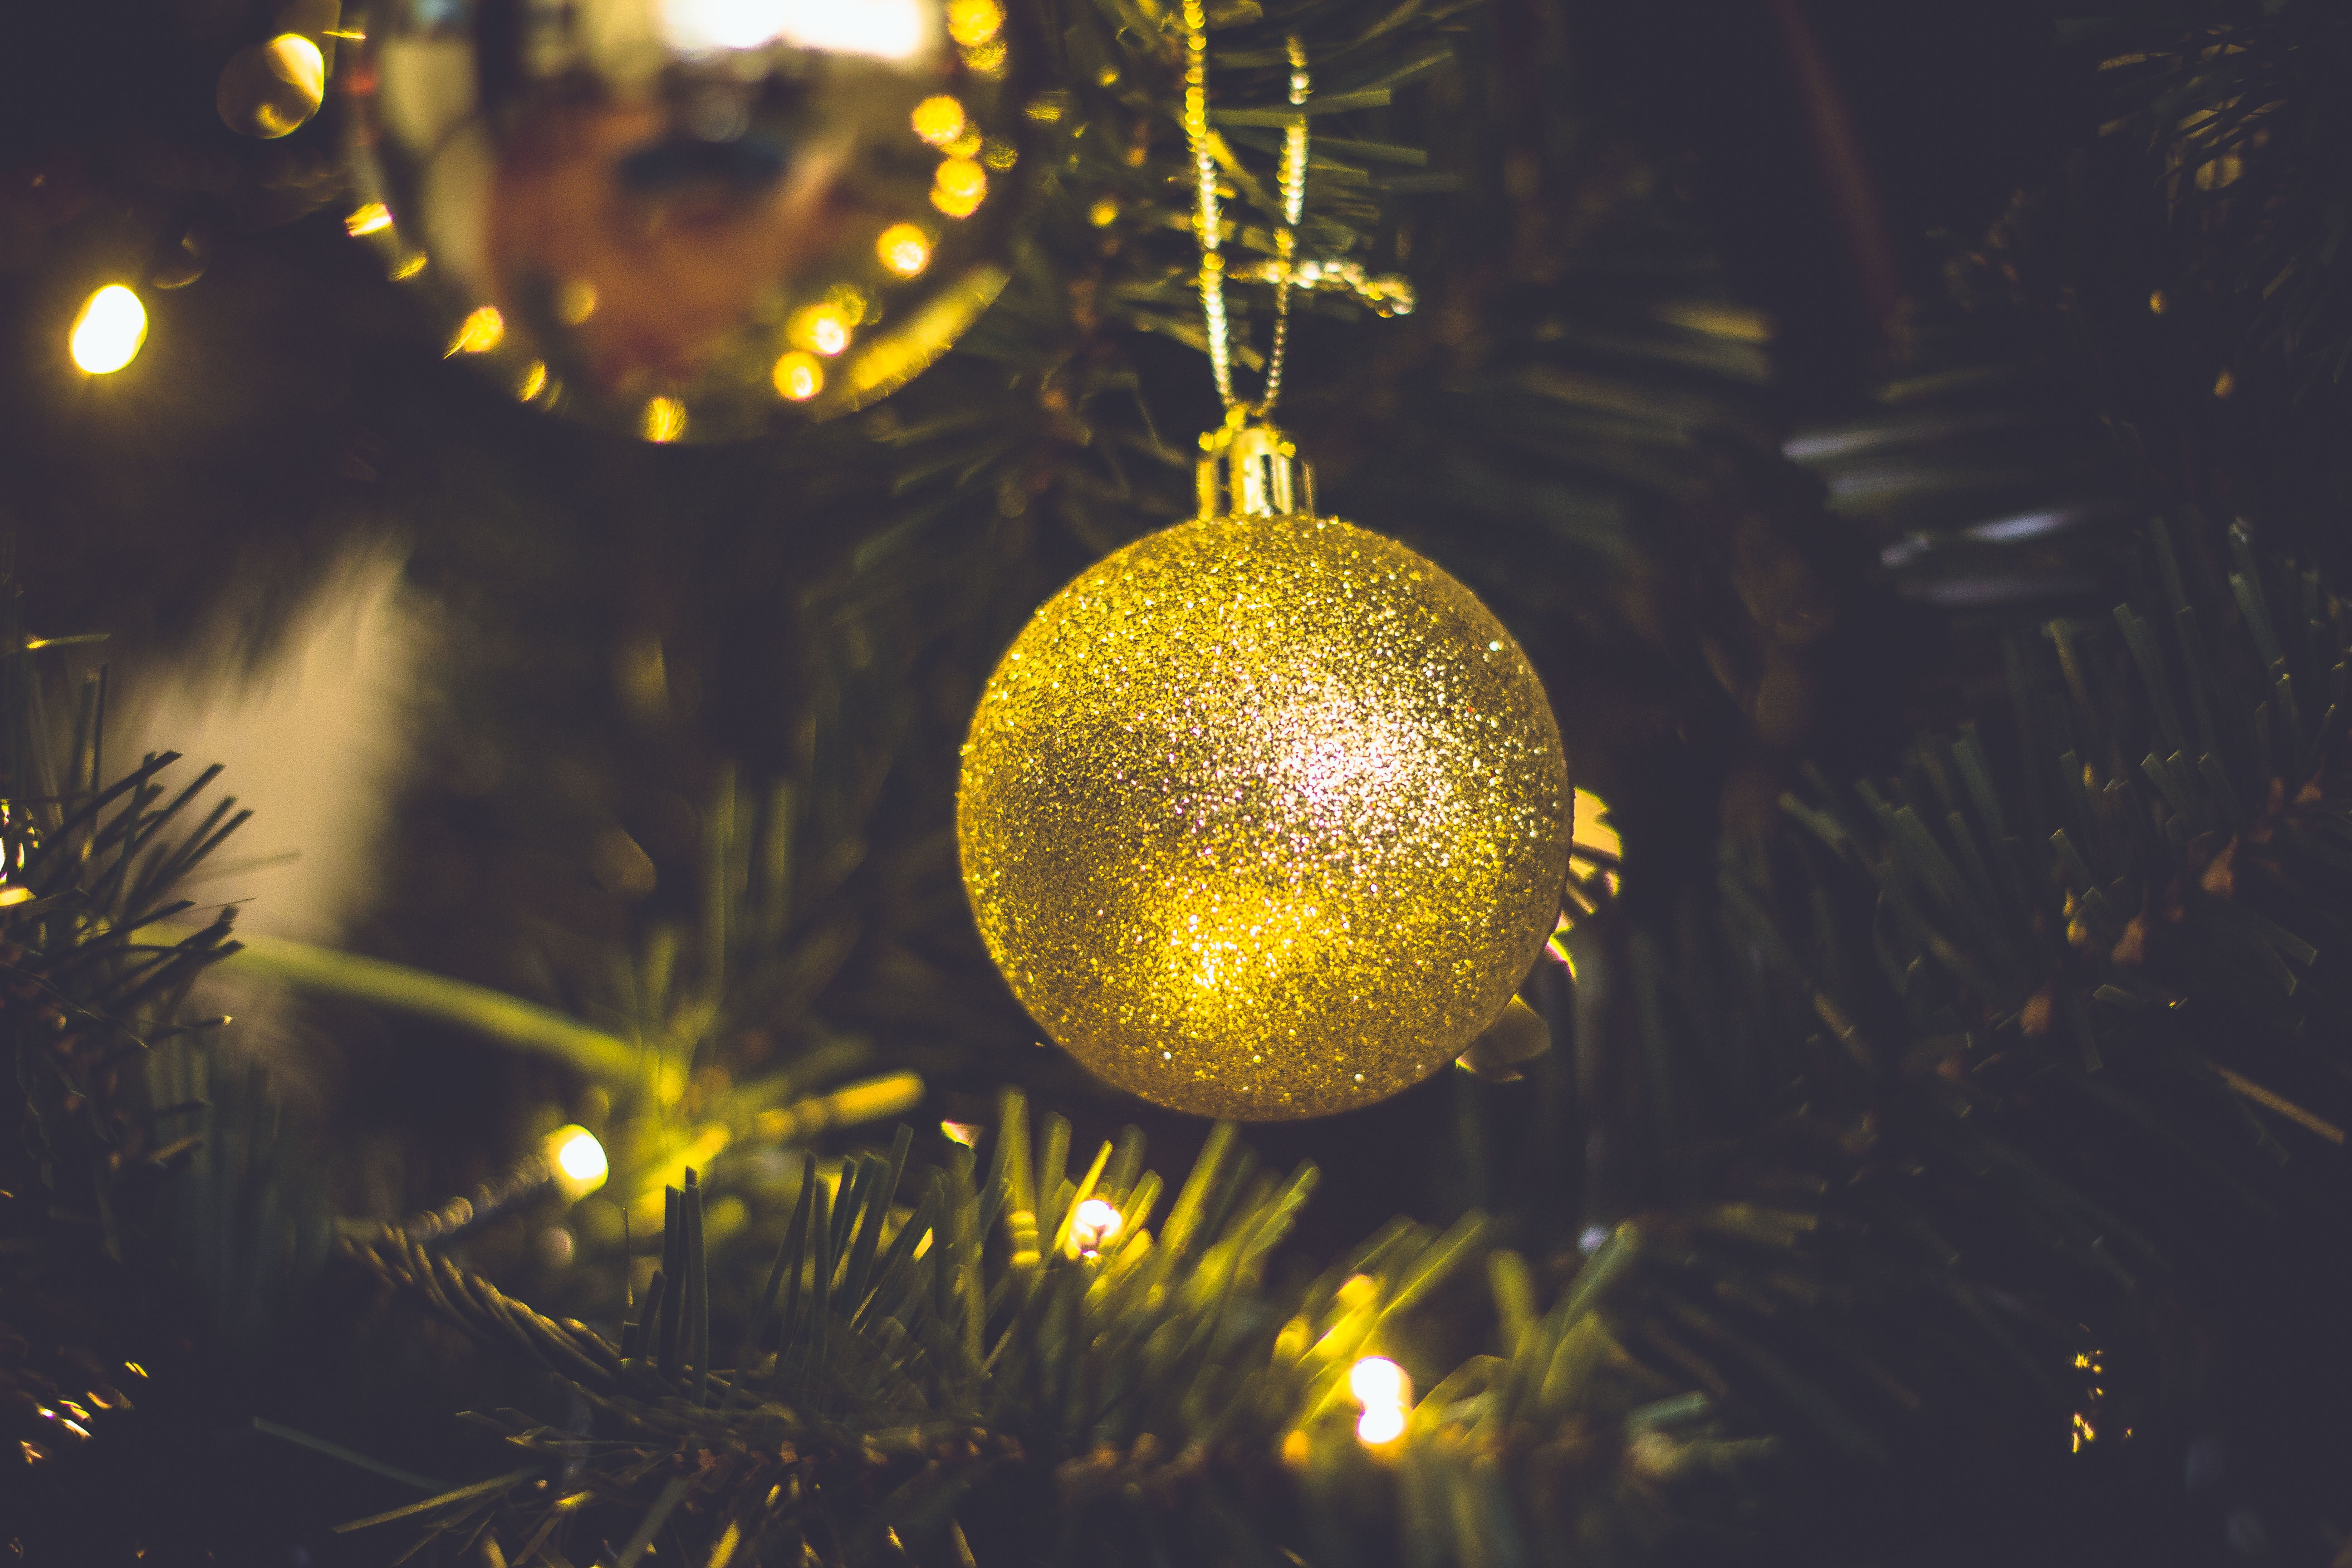 Brown Christmas Bauble, Balls, Gold, Tree, Thread, HQ Photo